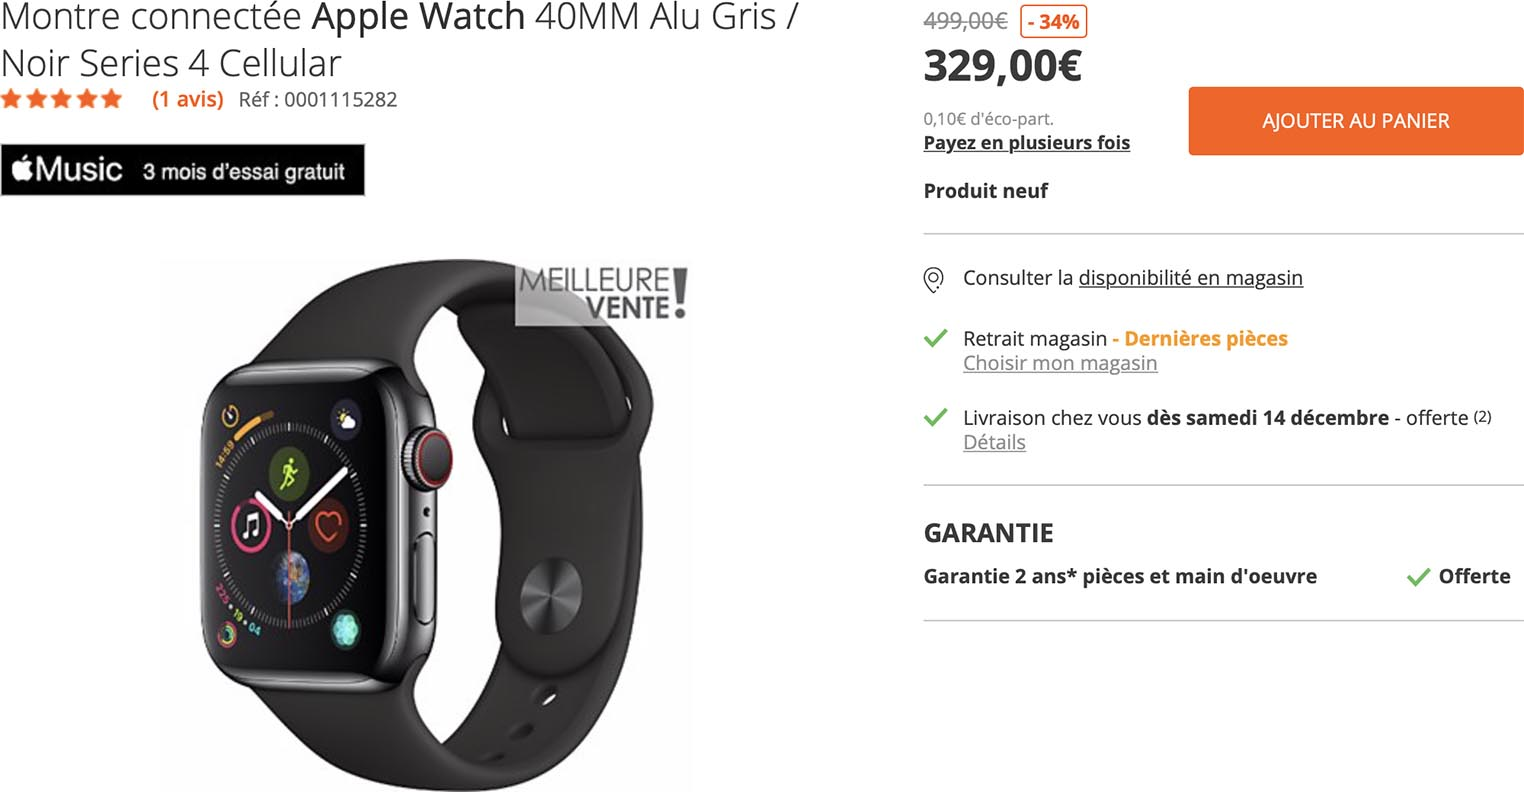 Apple Watch promo Boulanger